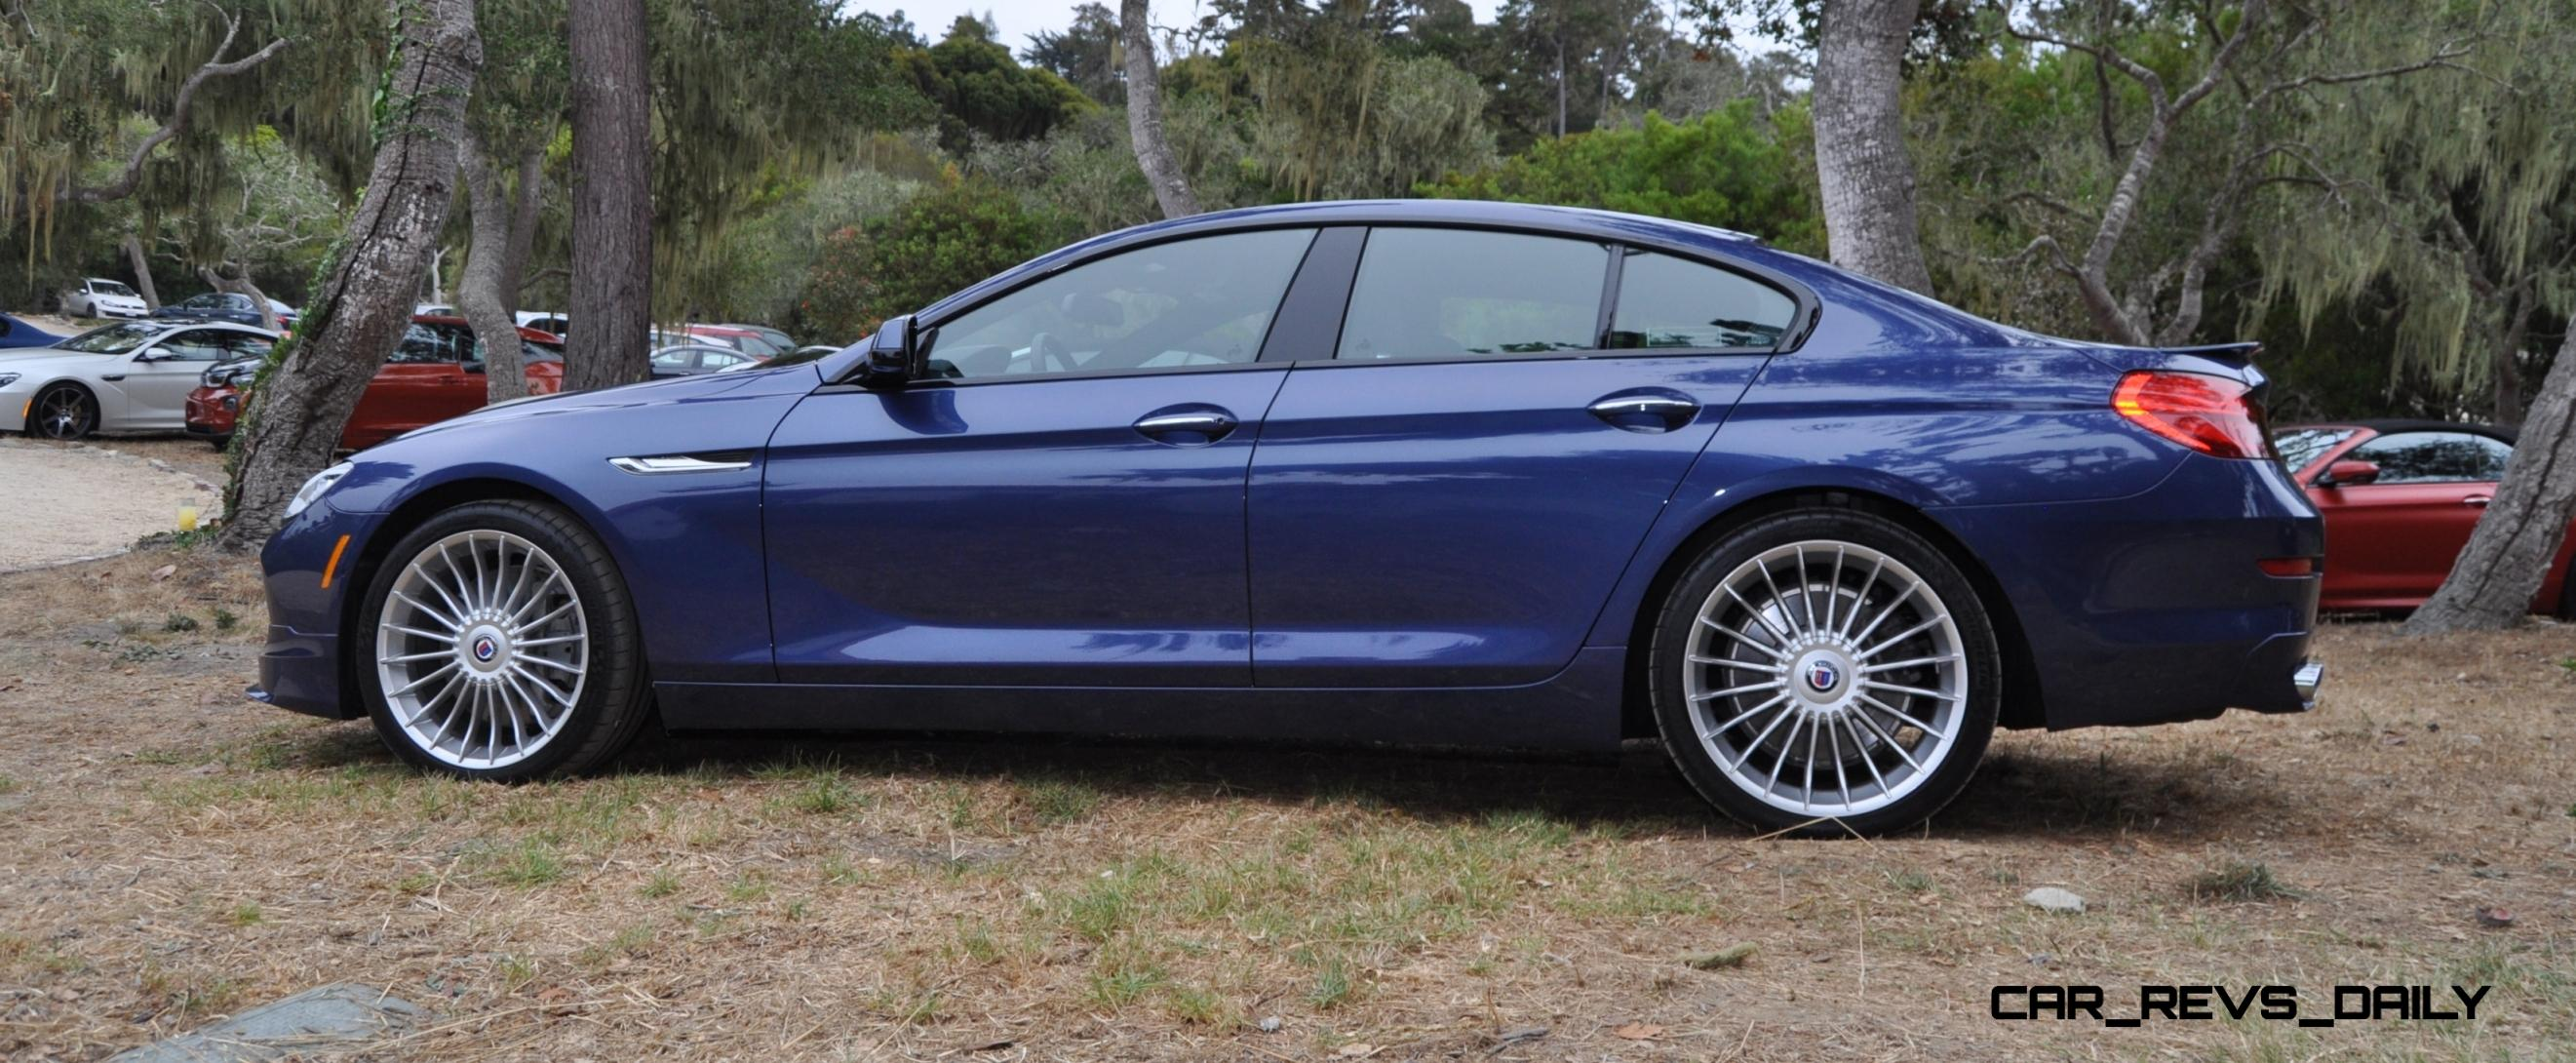 540hp 3 7s 2015 Bmw Alpina B6 Xdrive Gran Coupe Is Now